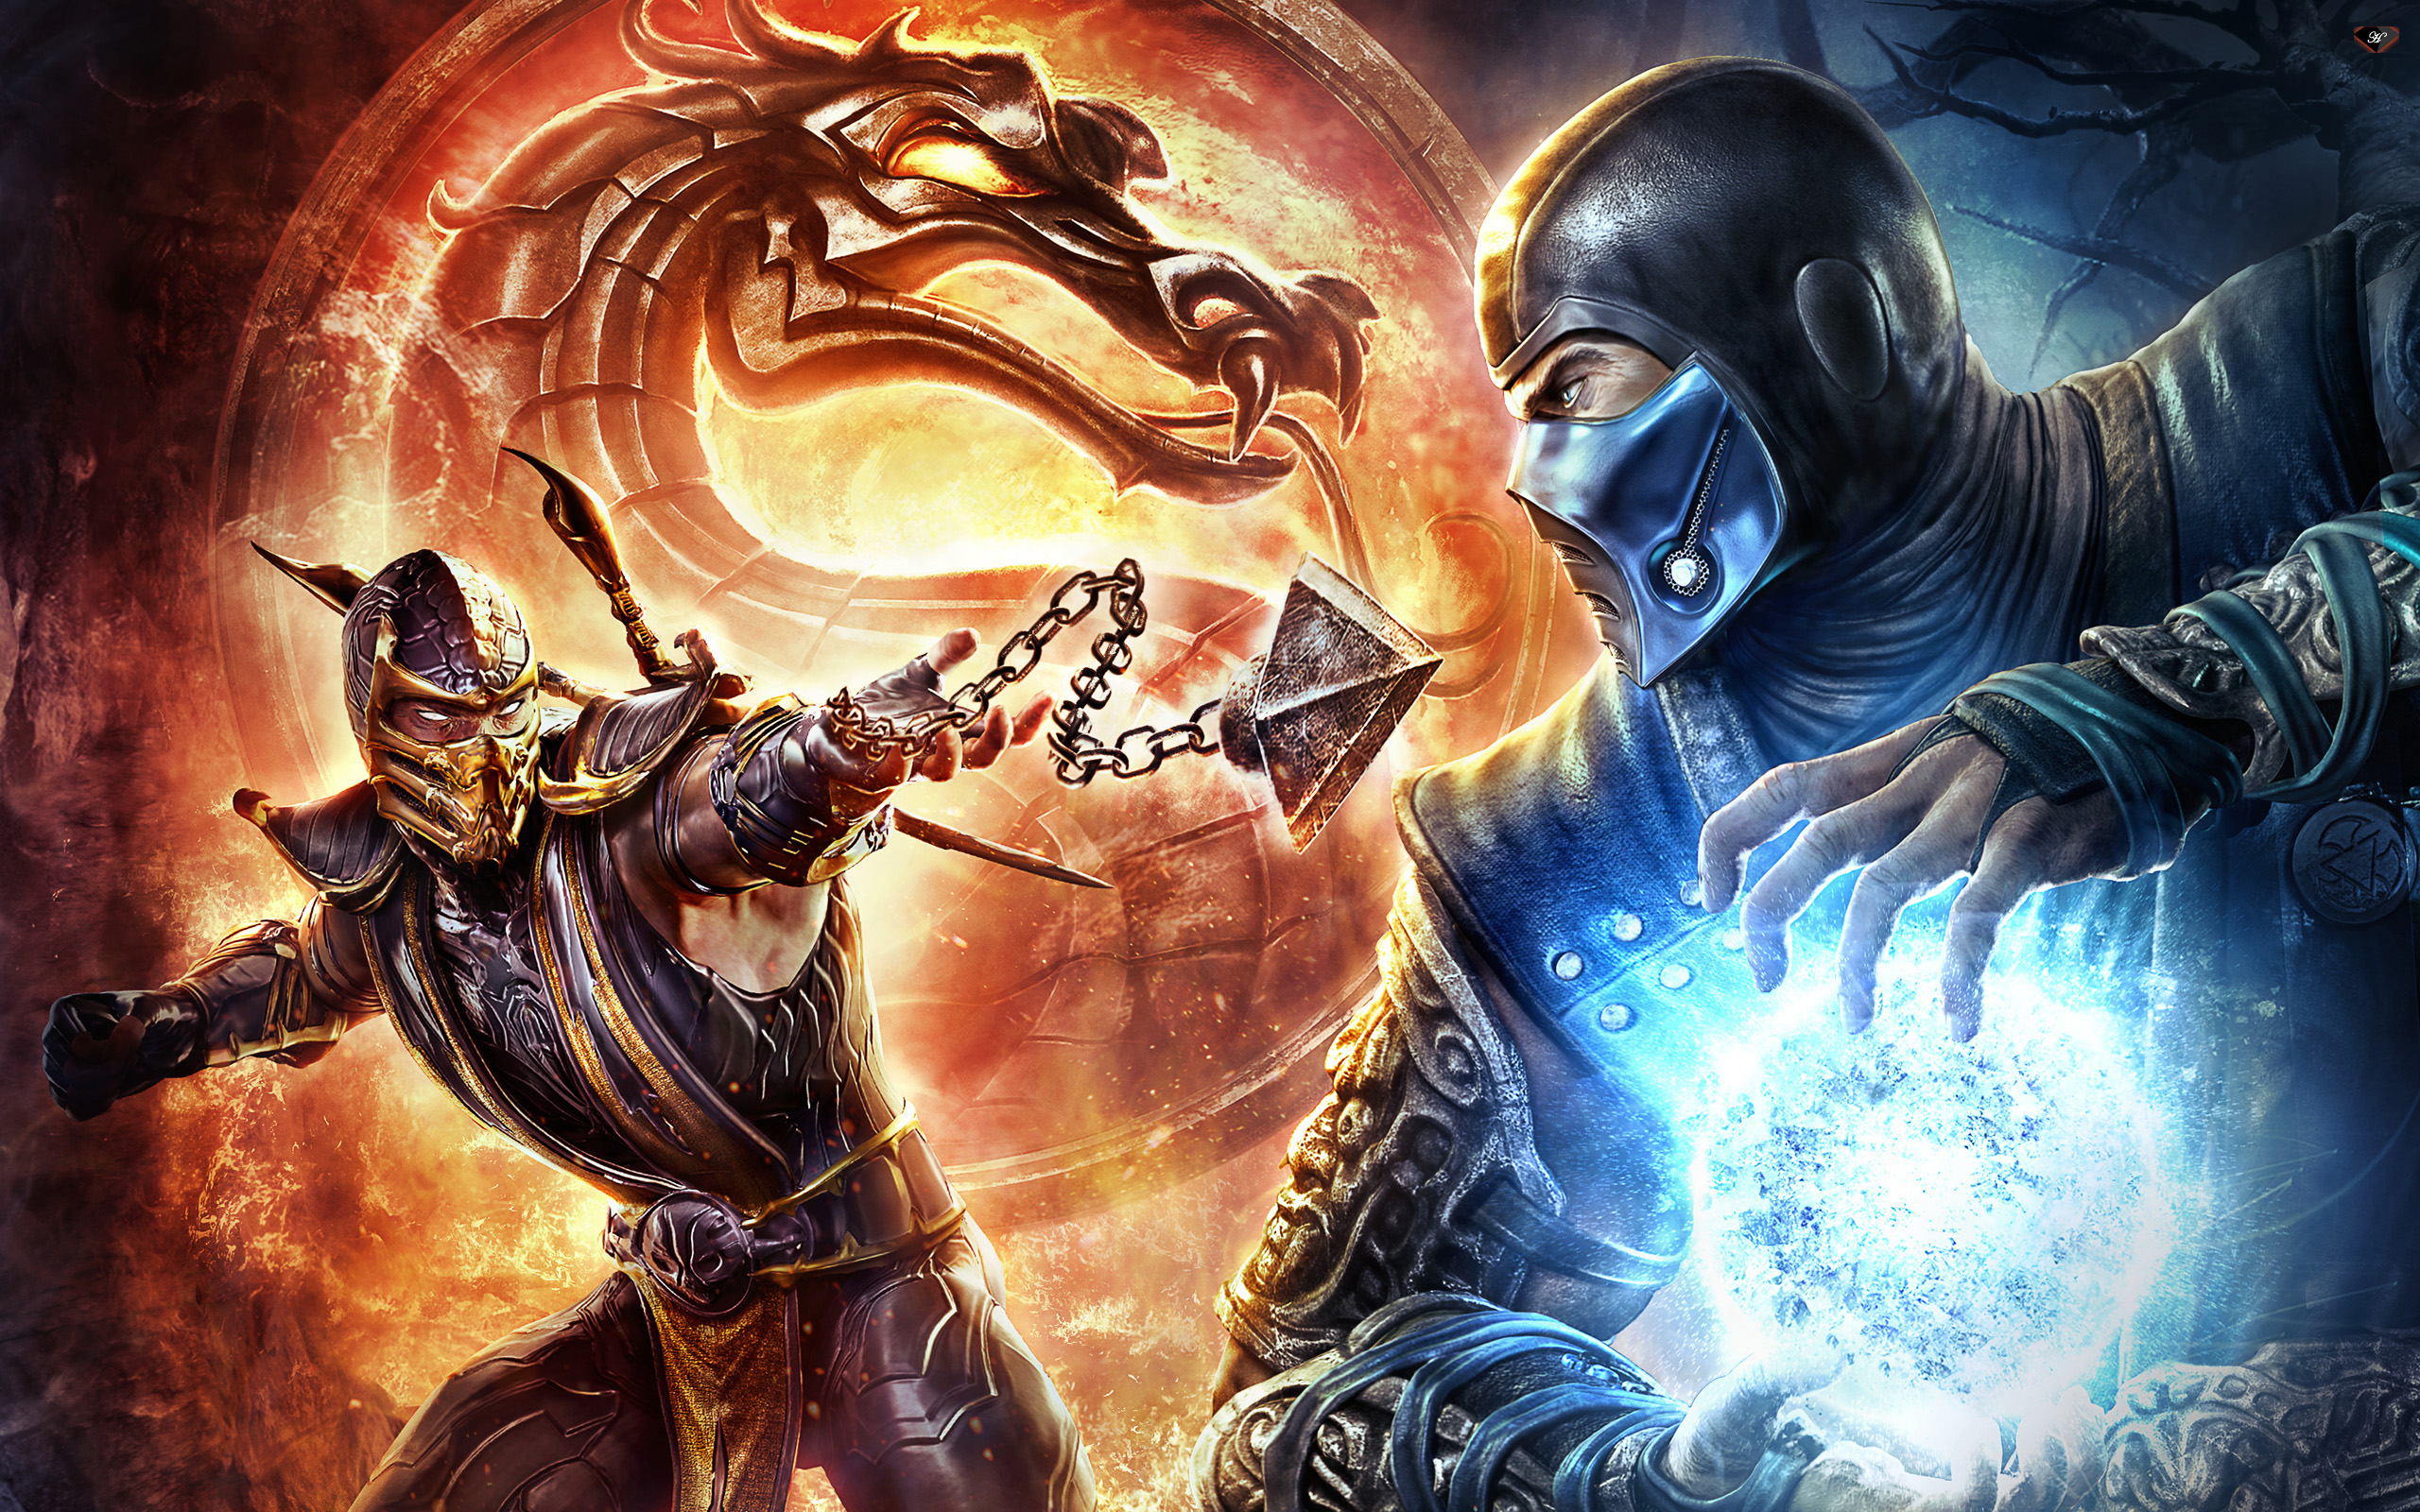 61 Sub Zero Mortal Kombat Hd Wallpapers Background Images